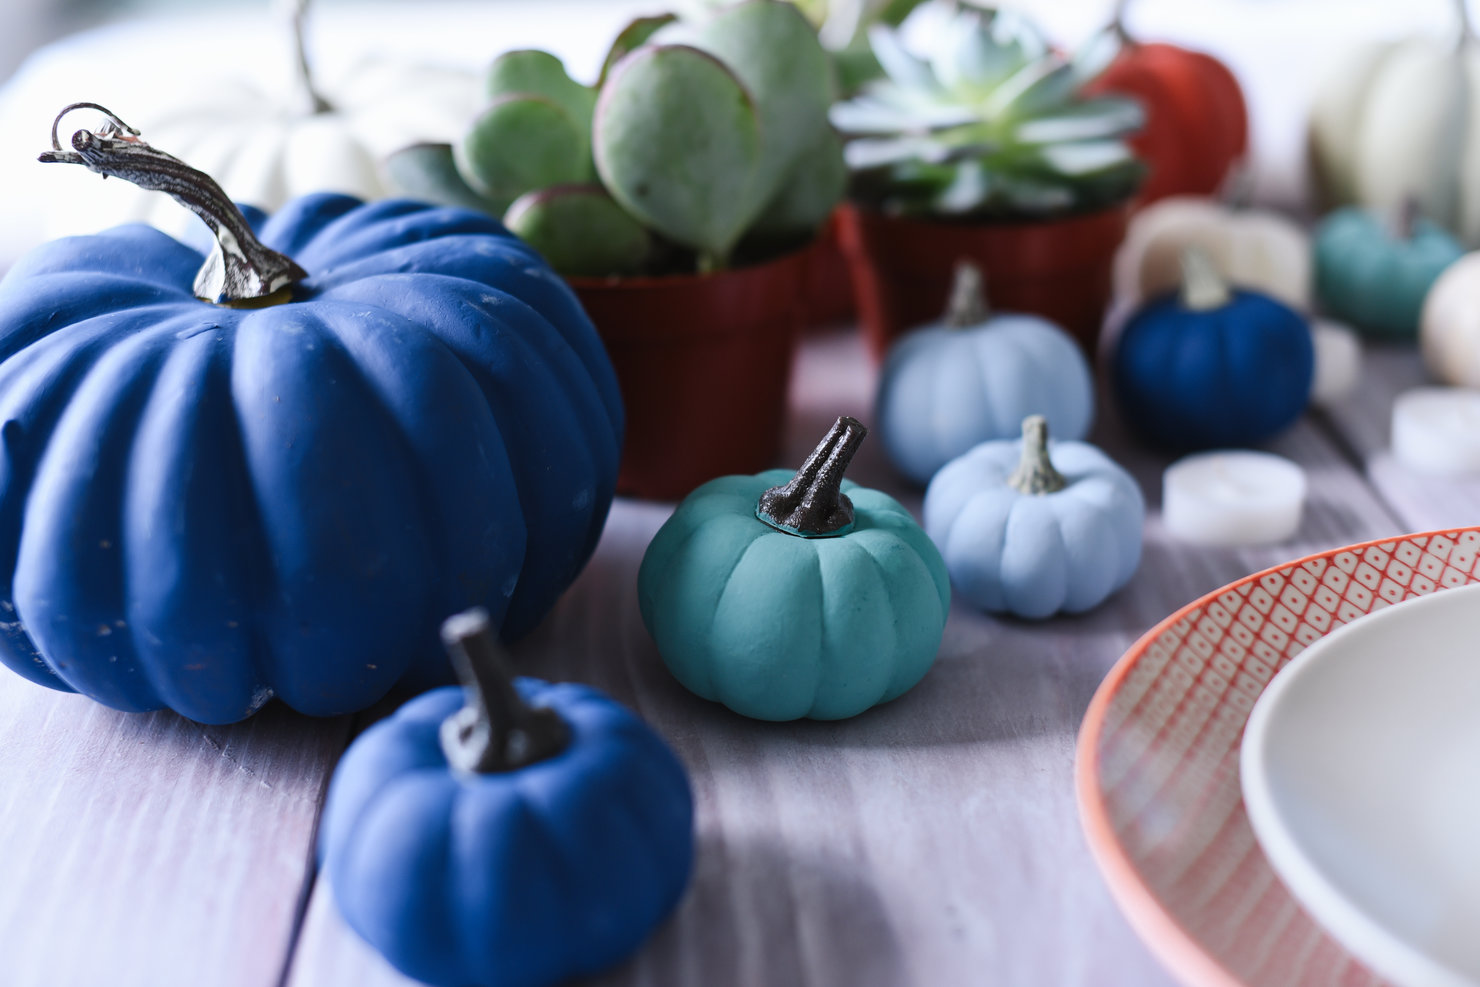 painted pumpkins sit on table